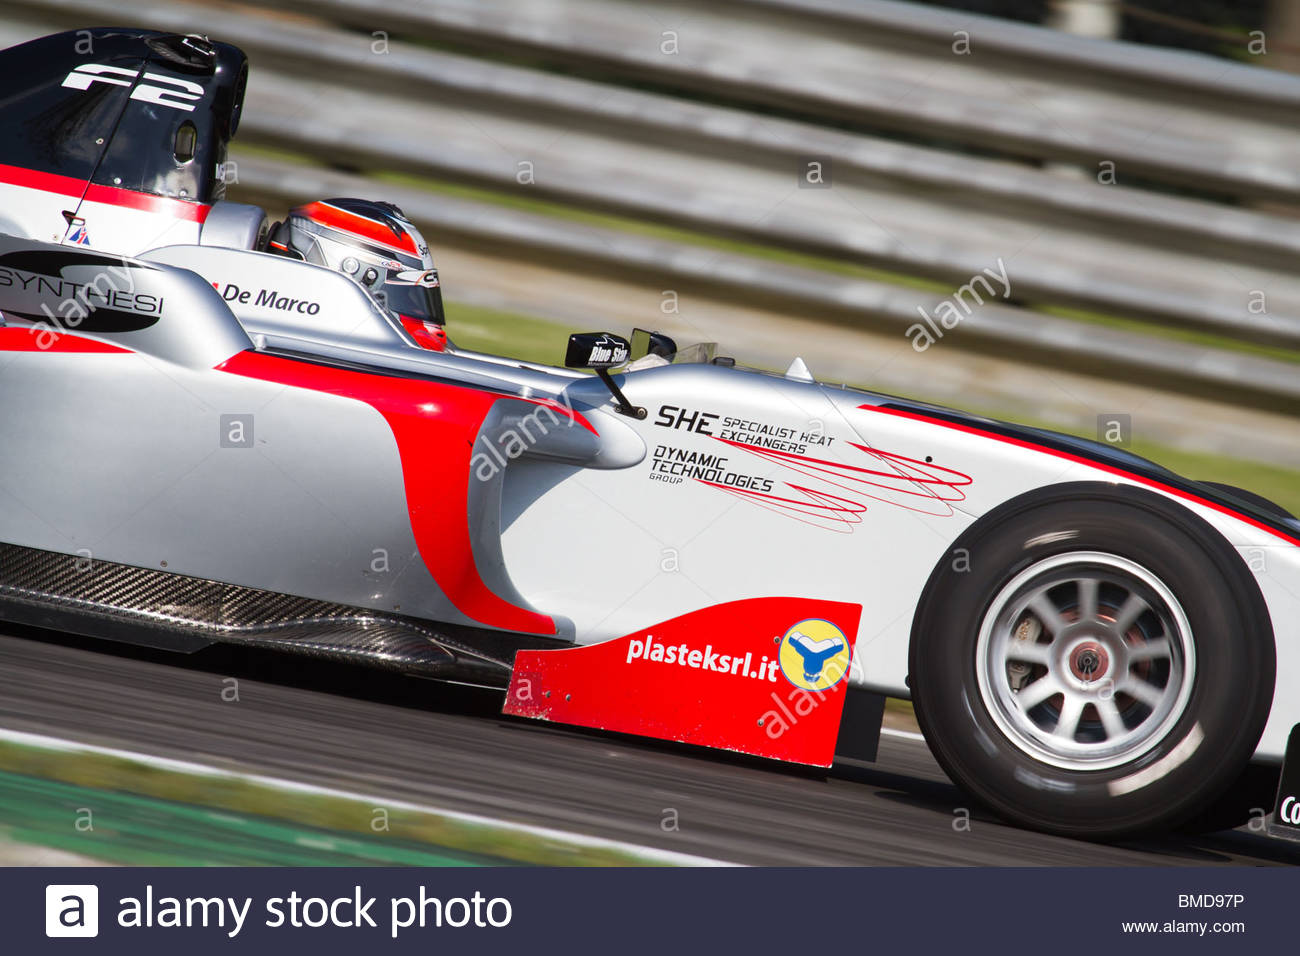 Nicola De Marco during qualification for race 2 at FIA Formula 2 Championship 2010 in Monza. - Stock Image